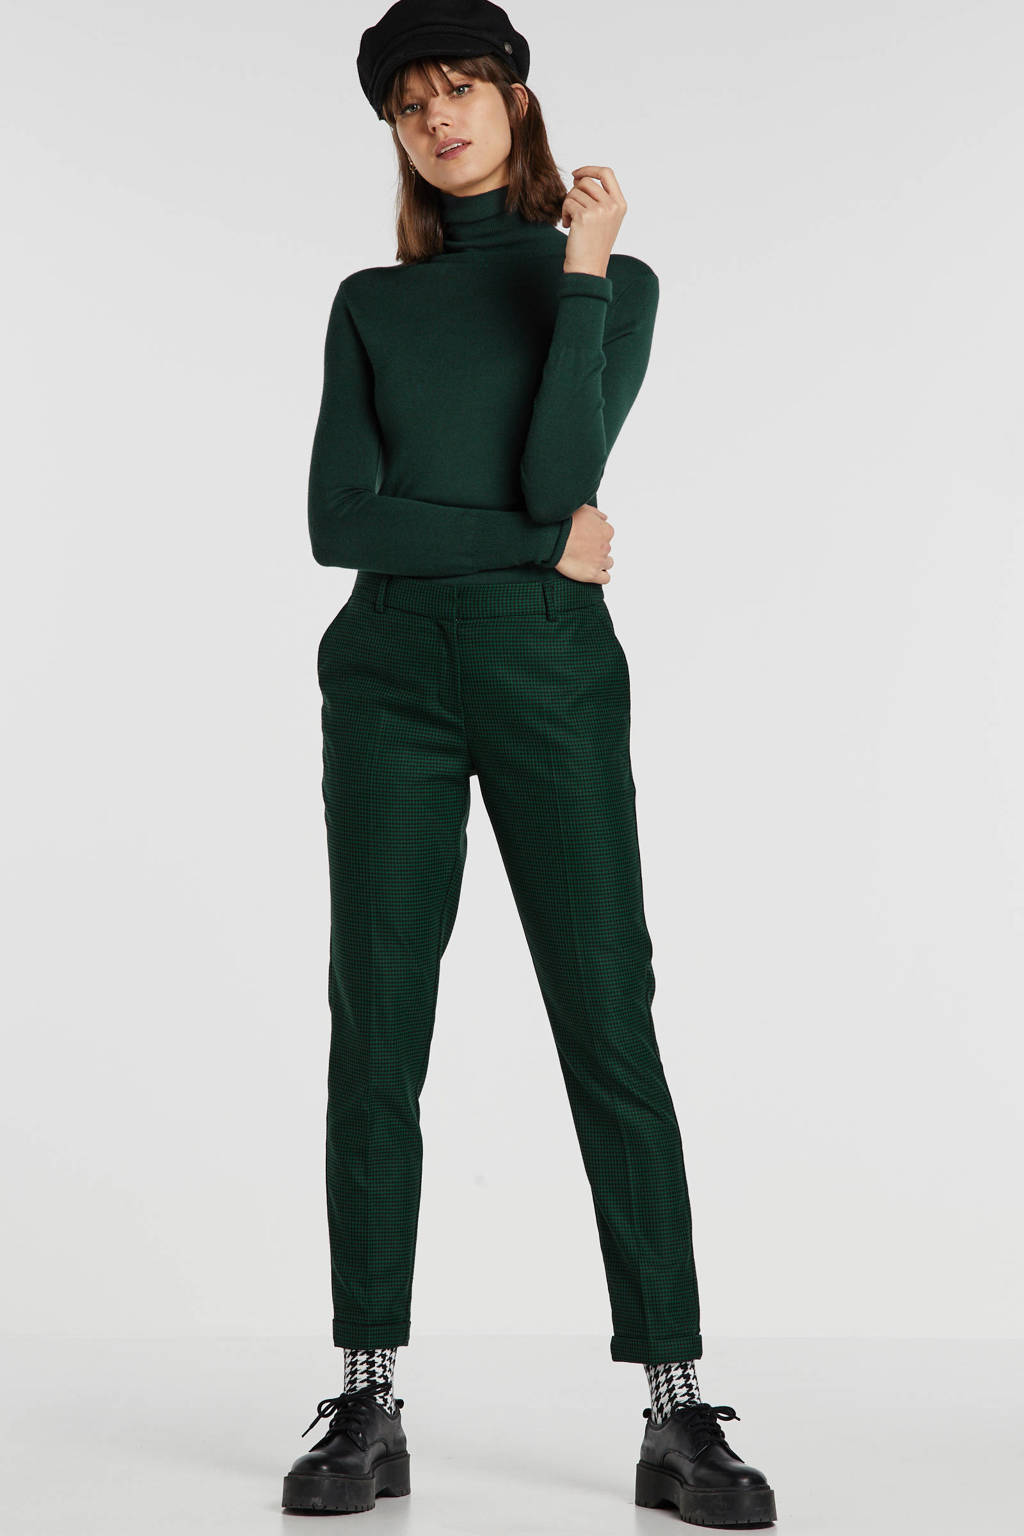 SELECTED FEMME regular fit pantalon met pied-de-poule groen/zwart, Groen/zwart